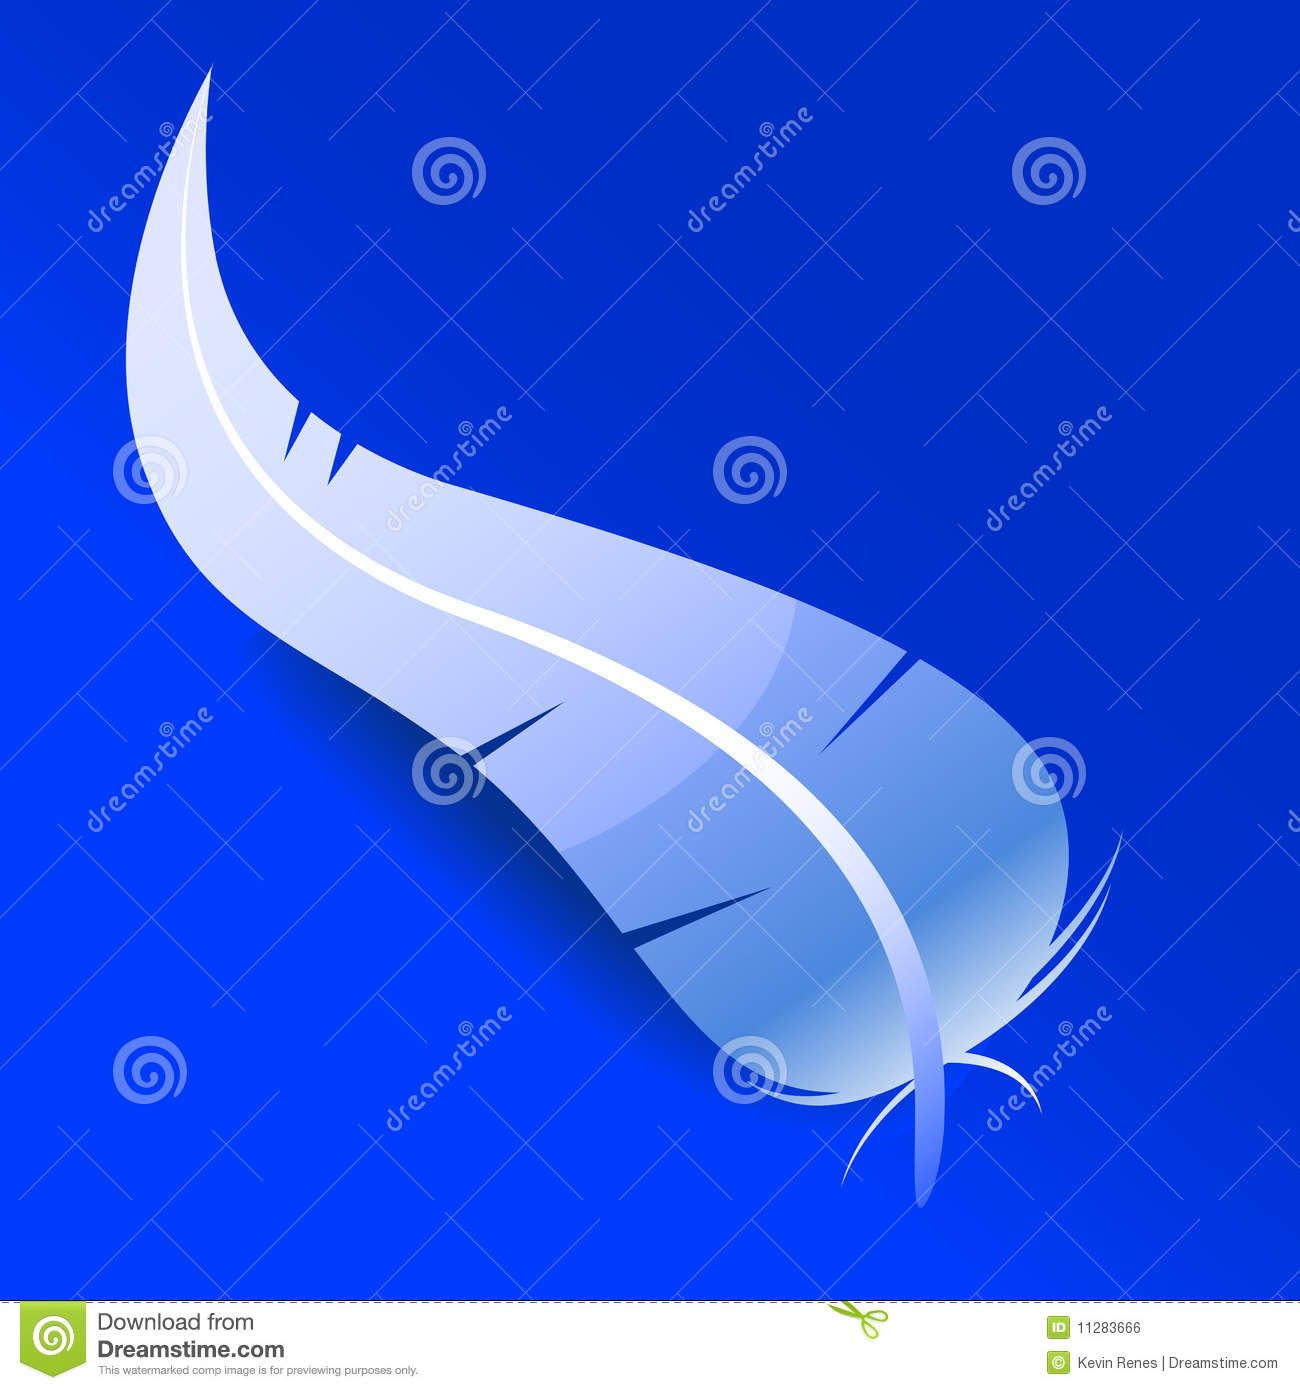 Vector Feather Royalty Free Stock Image - Image: 11283666